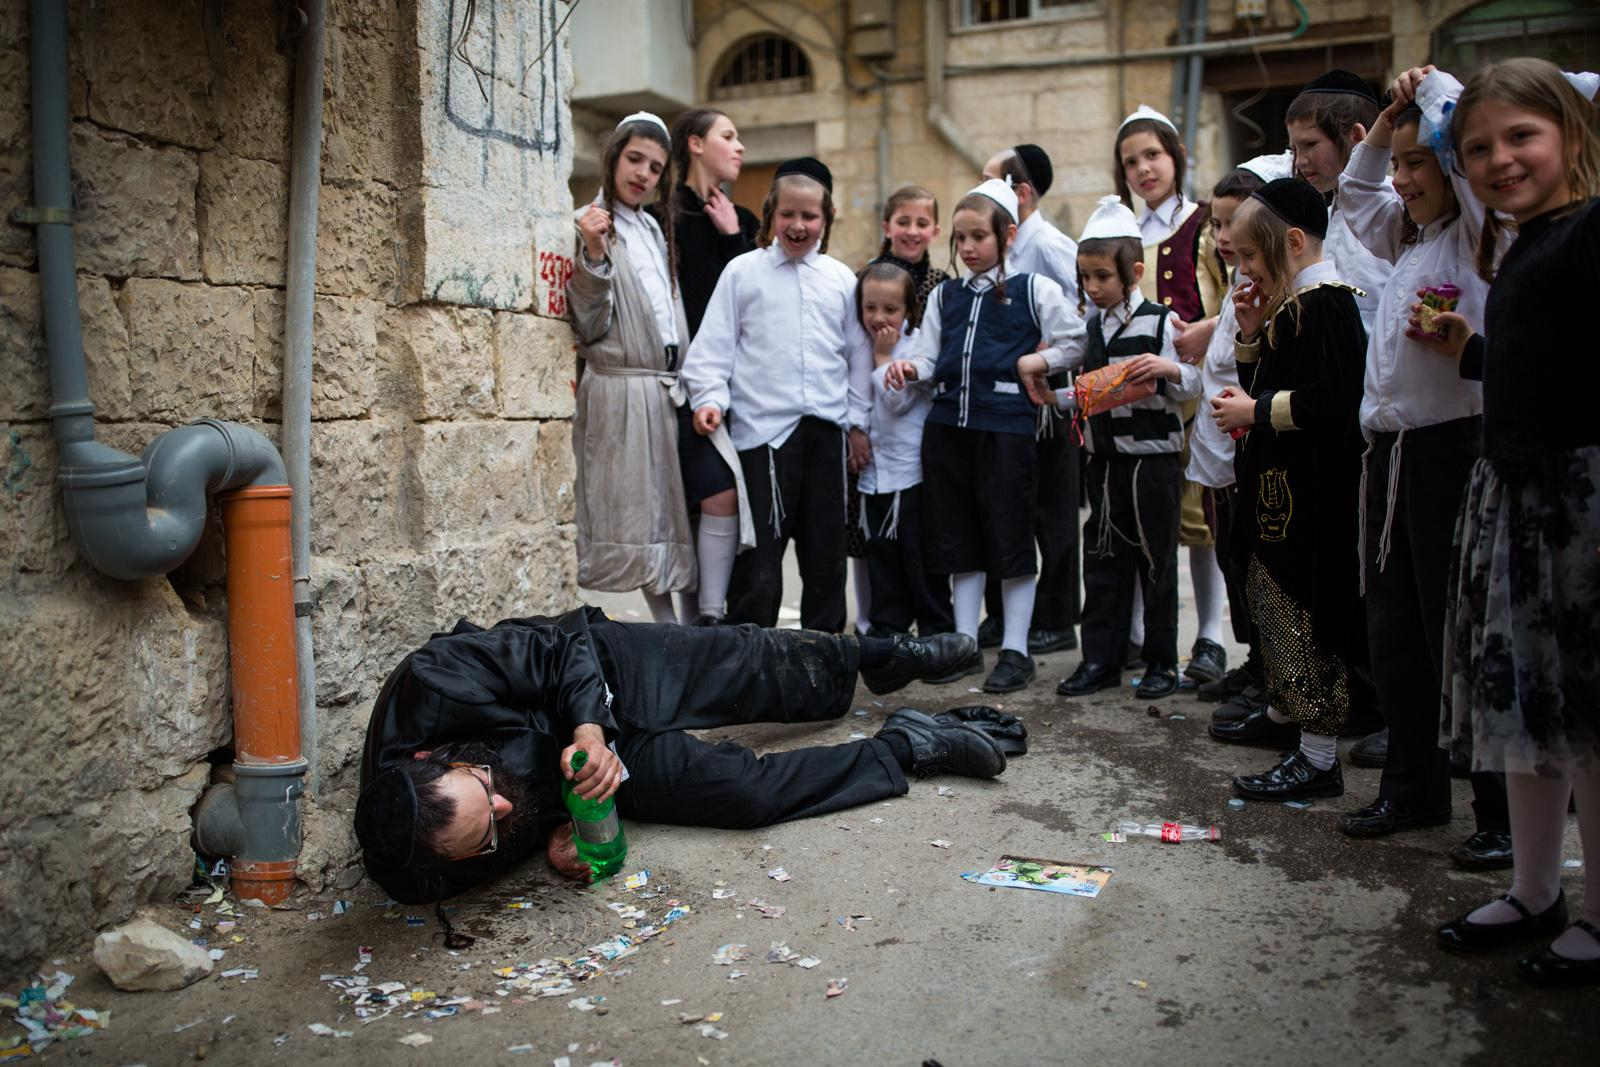 JERUSALEM, ISRAEL - MARCH 25, 2016: Ultra Orthodox Jews celebrate the Jewish holiday Purim in the streets of the ultra orthodox Jewish neighborhood of Meah Shearim, March 25, 2016, The Jewish holiday of Purim commemorates the Jews' salvation from genocide in ancient Persia, as recounted in the Book of Esther which is read in synagogues. Other customs include: sending food parcels and giving charity, dressing up in masks and costumes, eating a festive meal, and public celebration.